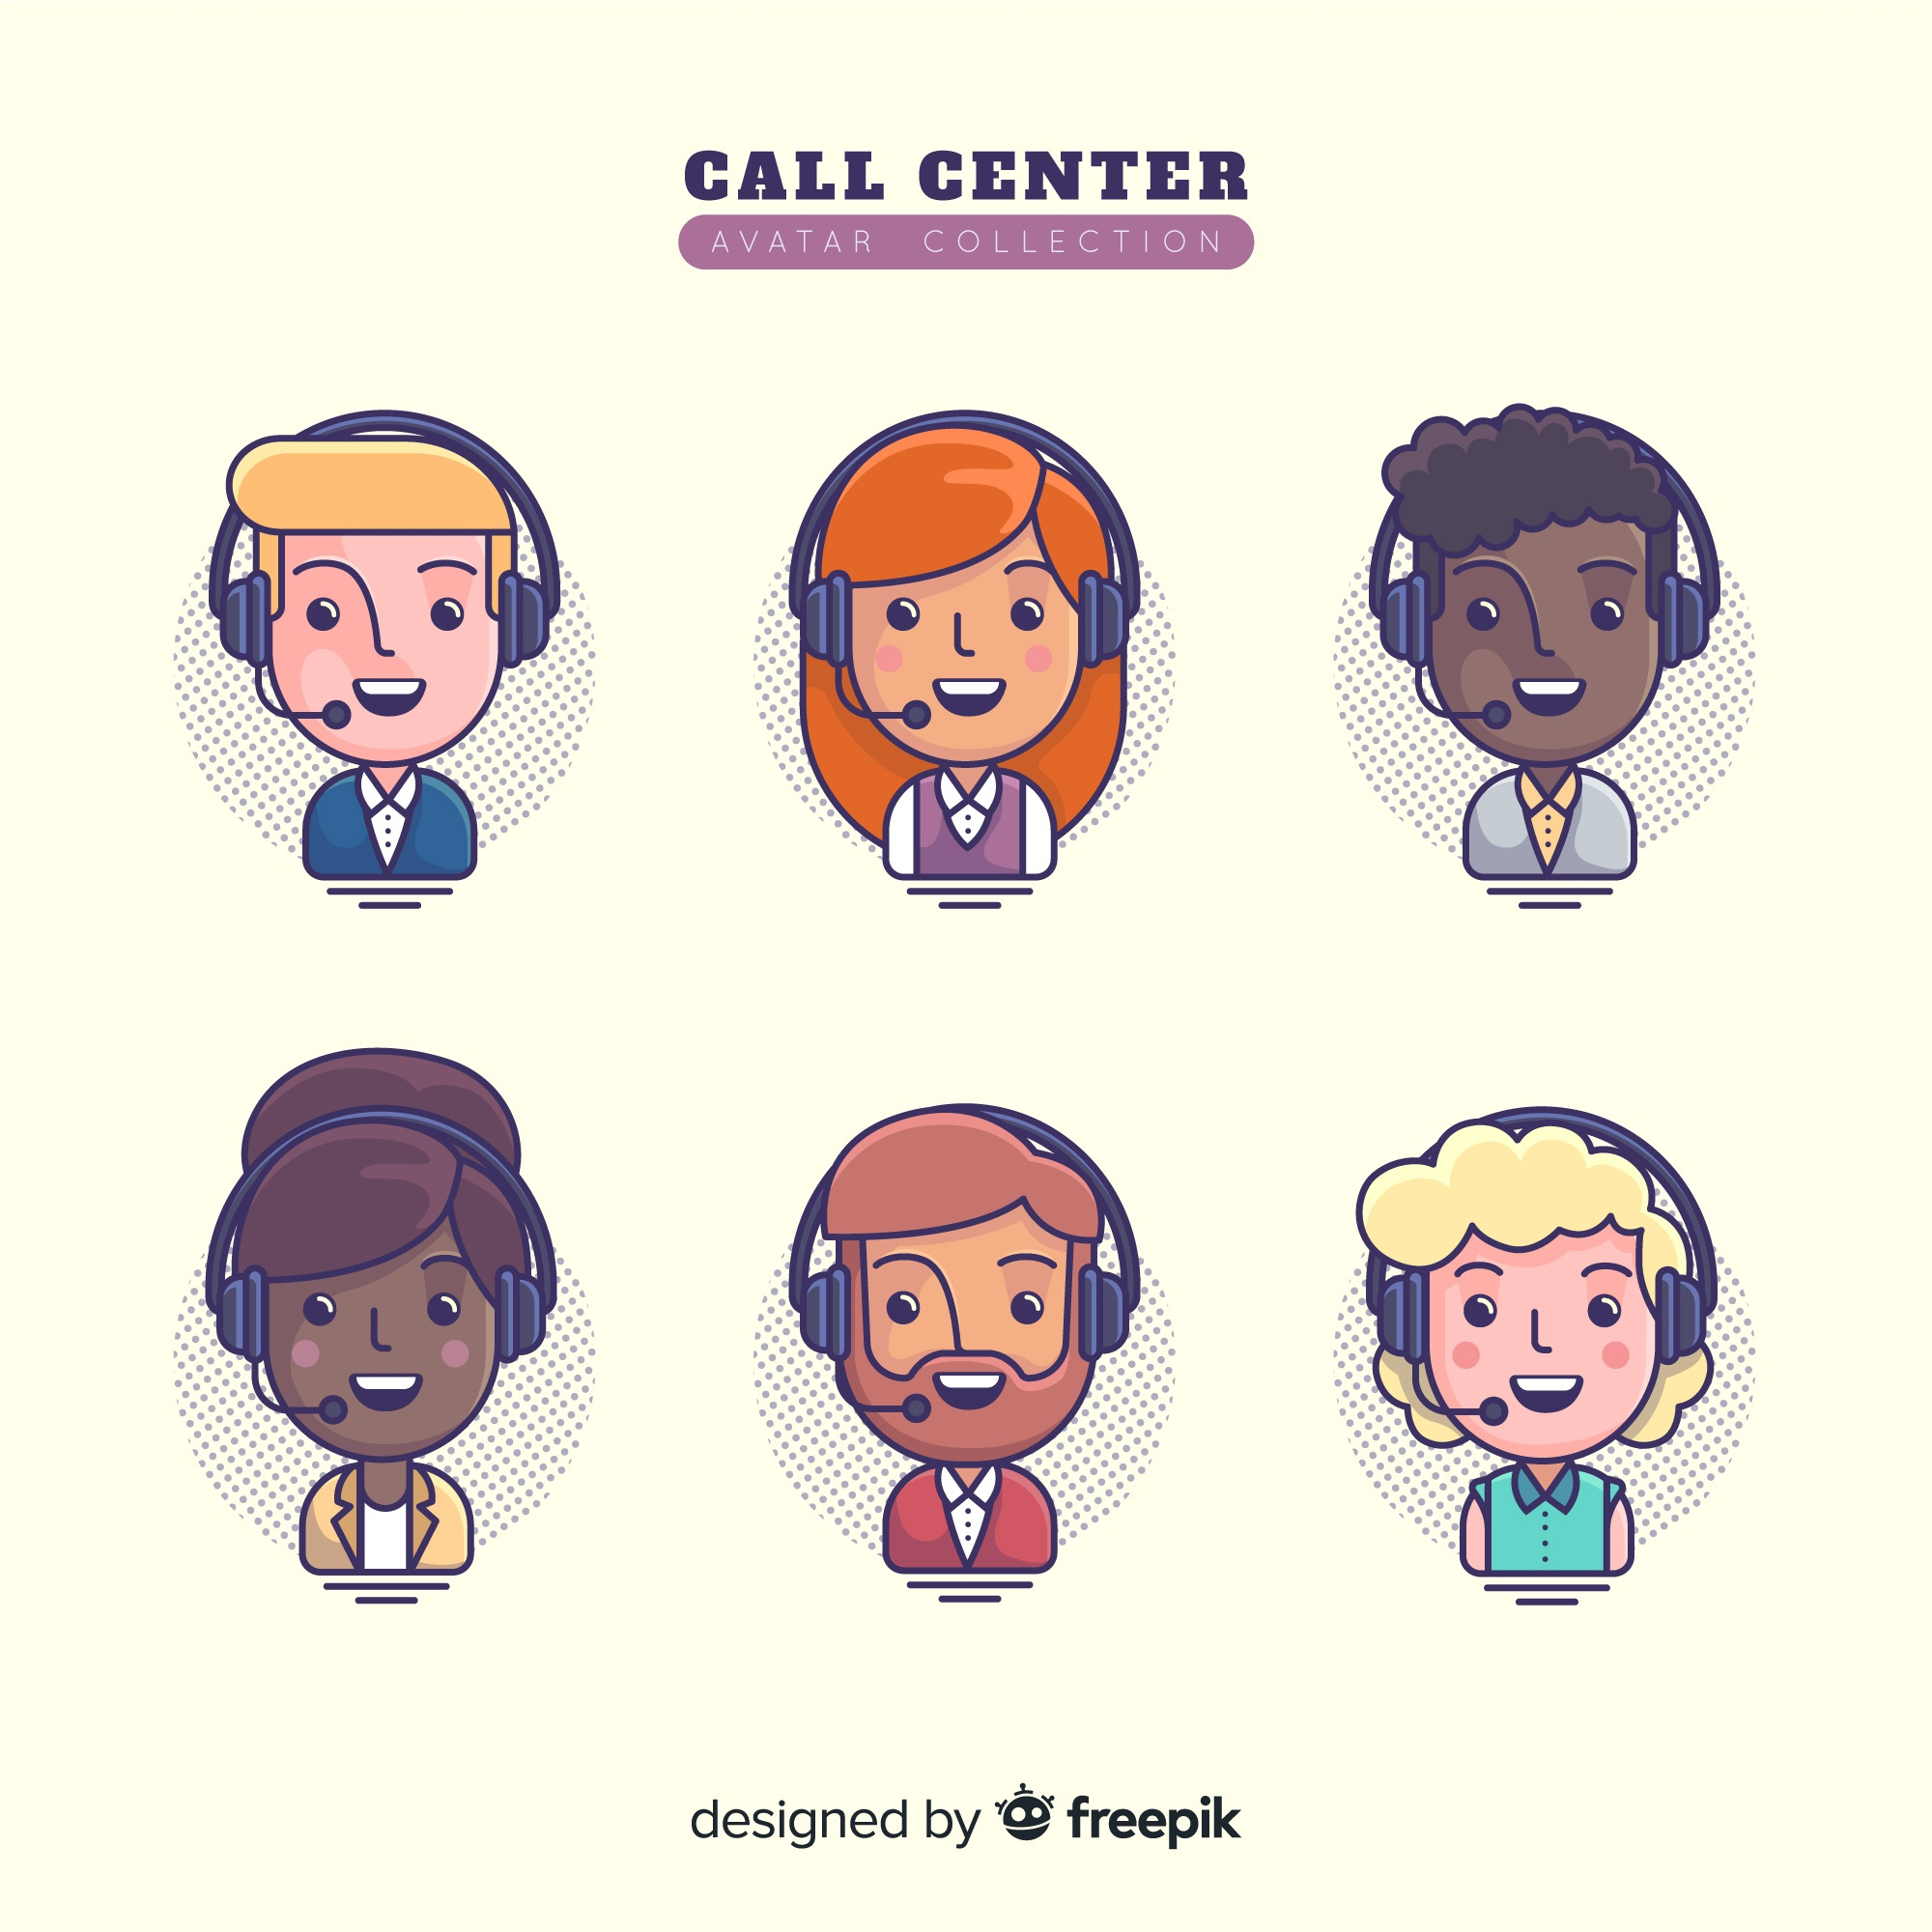 Sample of call center avatars